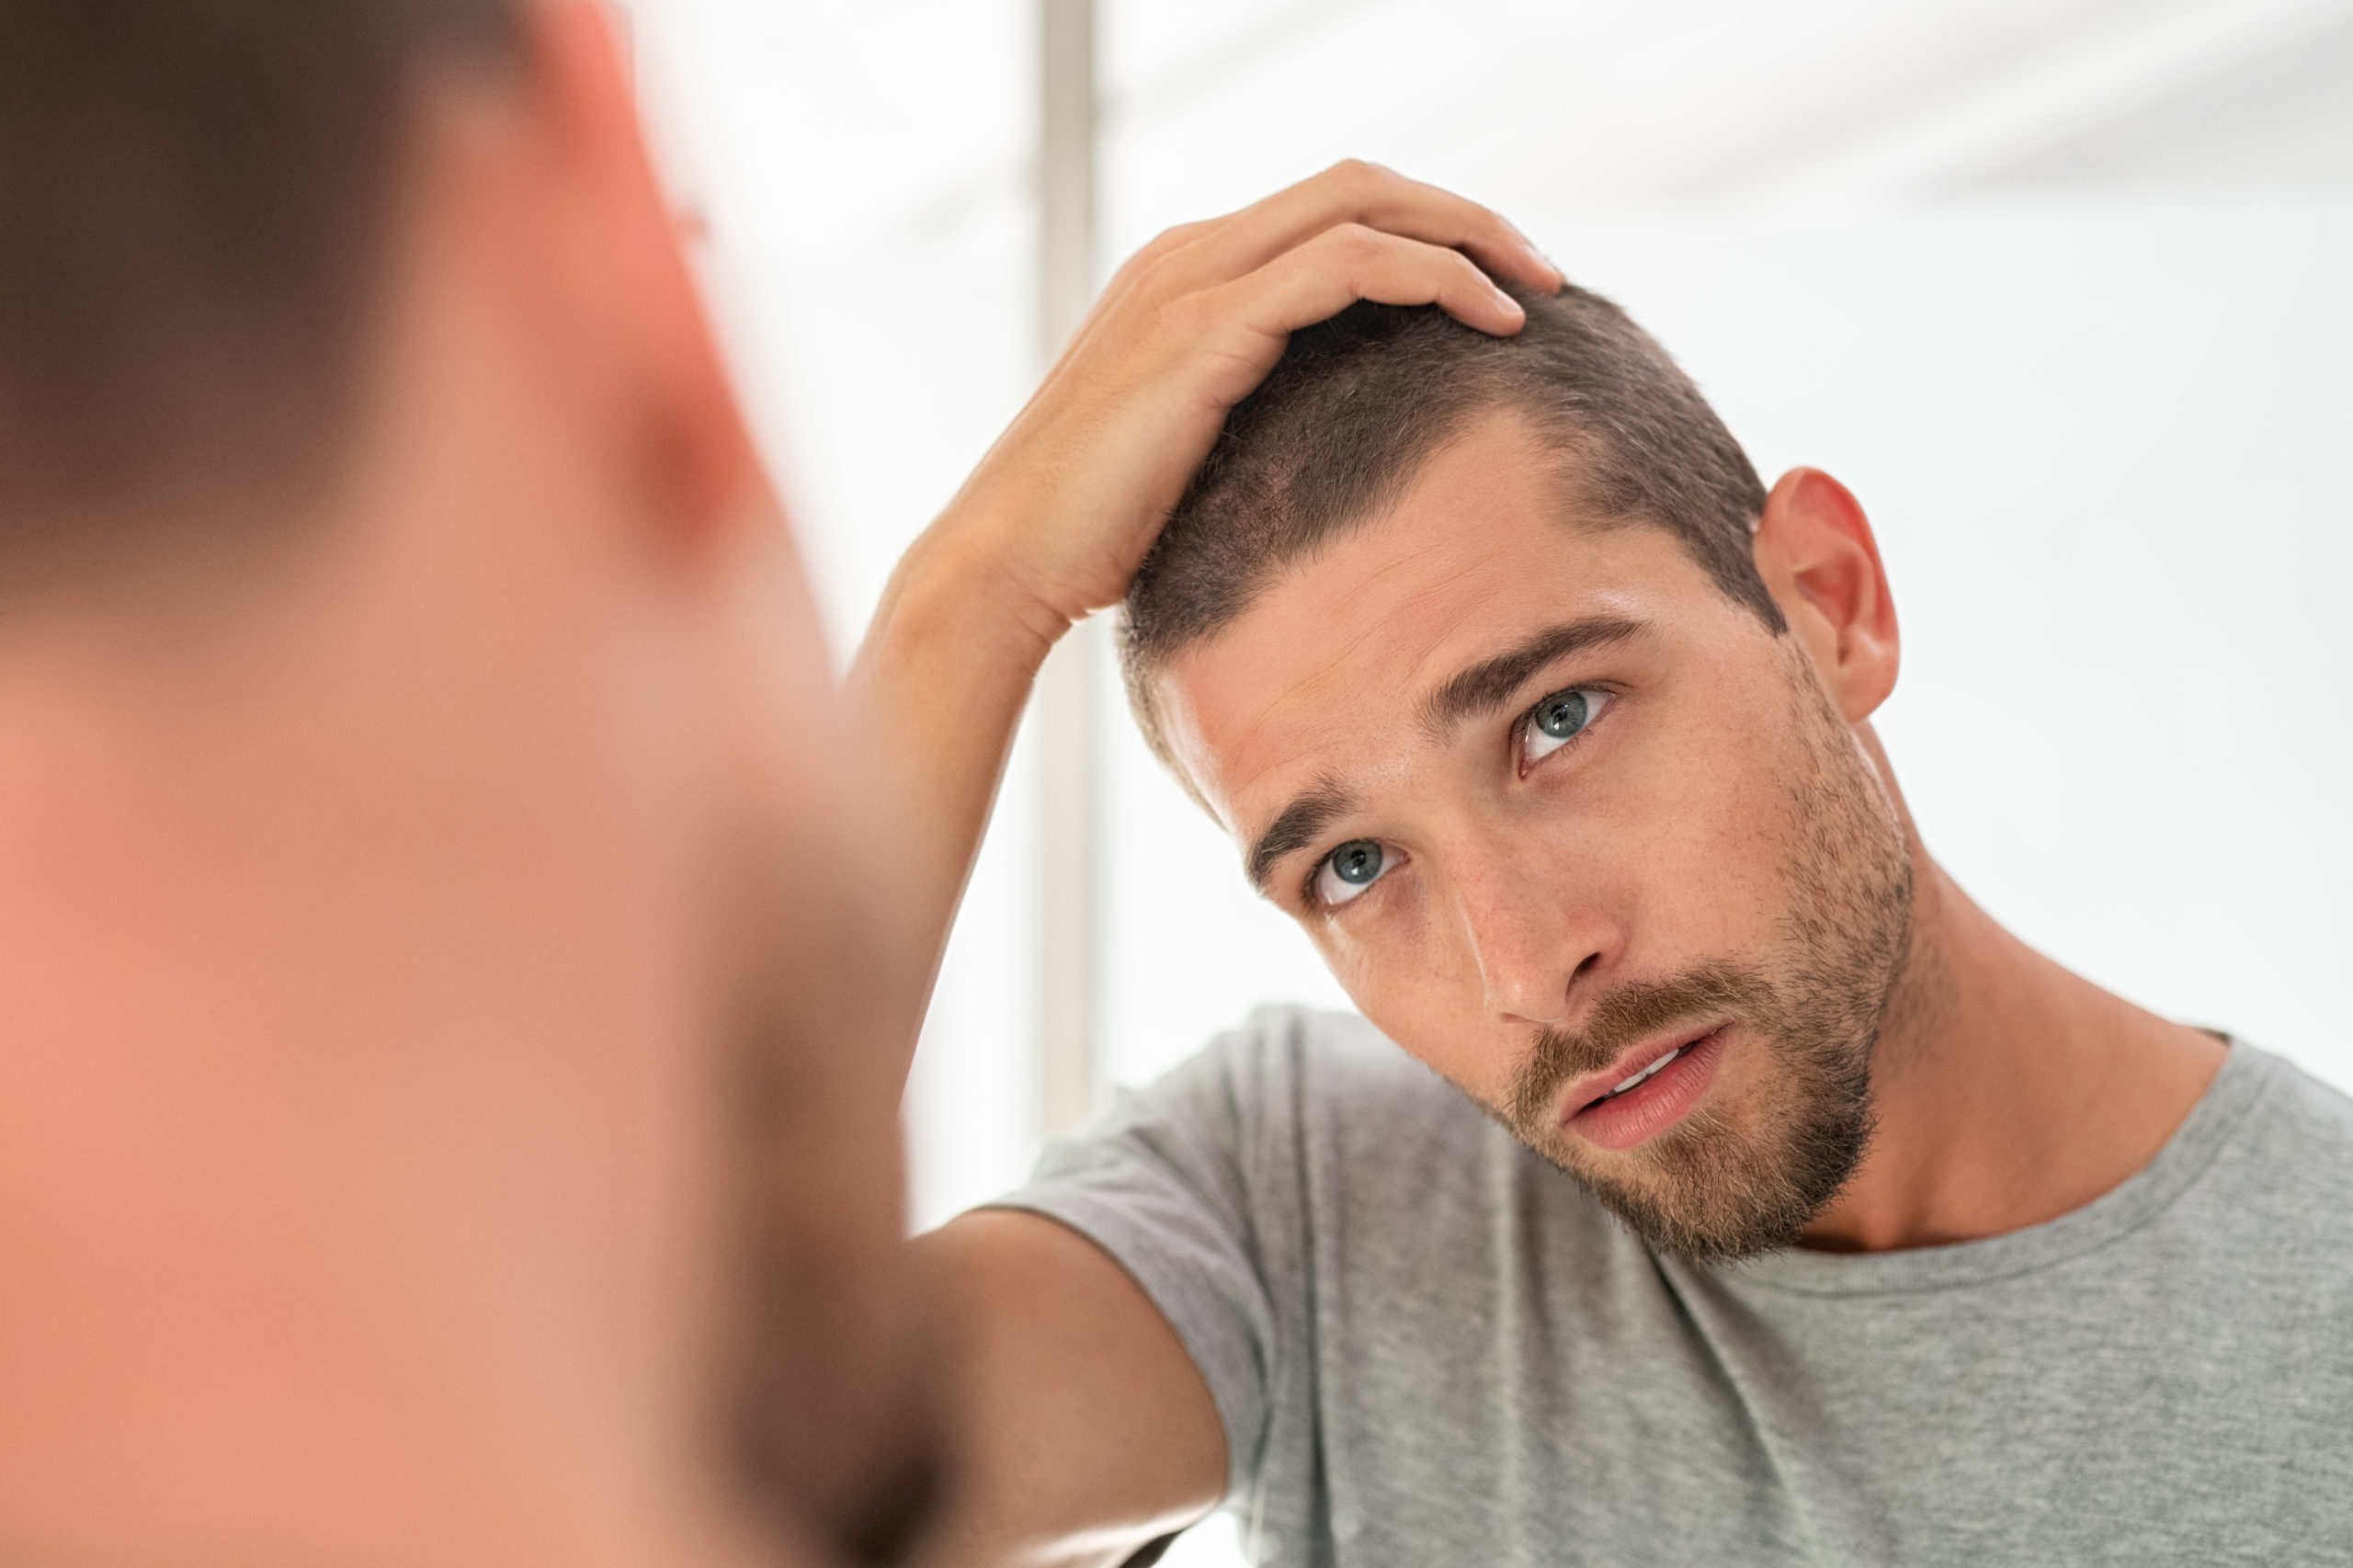 effects of hair loss